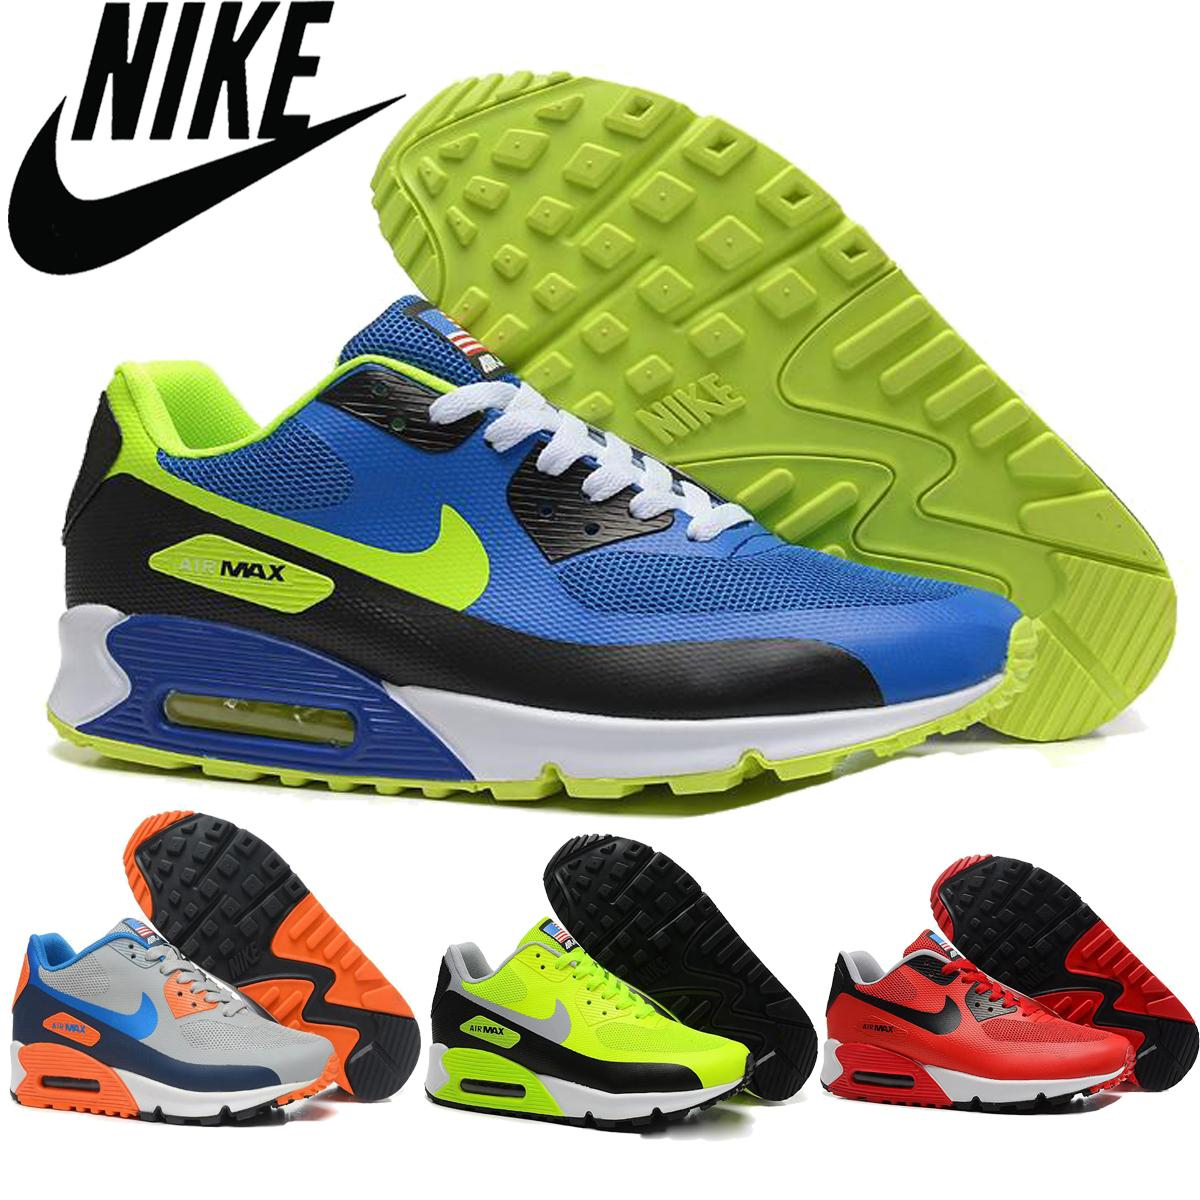 Nike Air Max 90 Usa Flag Shoes Men 2016 Original Classic Outdoor Athletic Shoe Airmax Gym